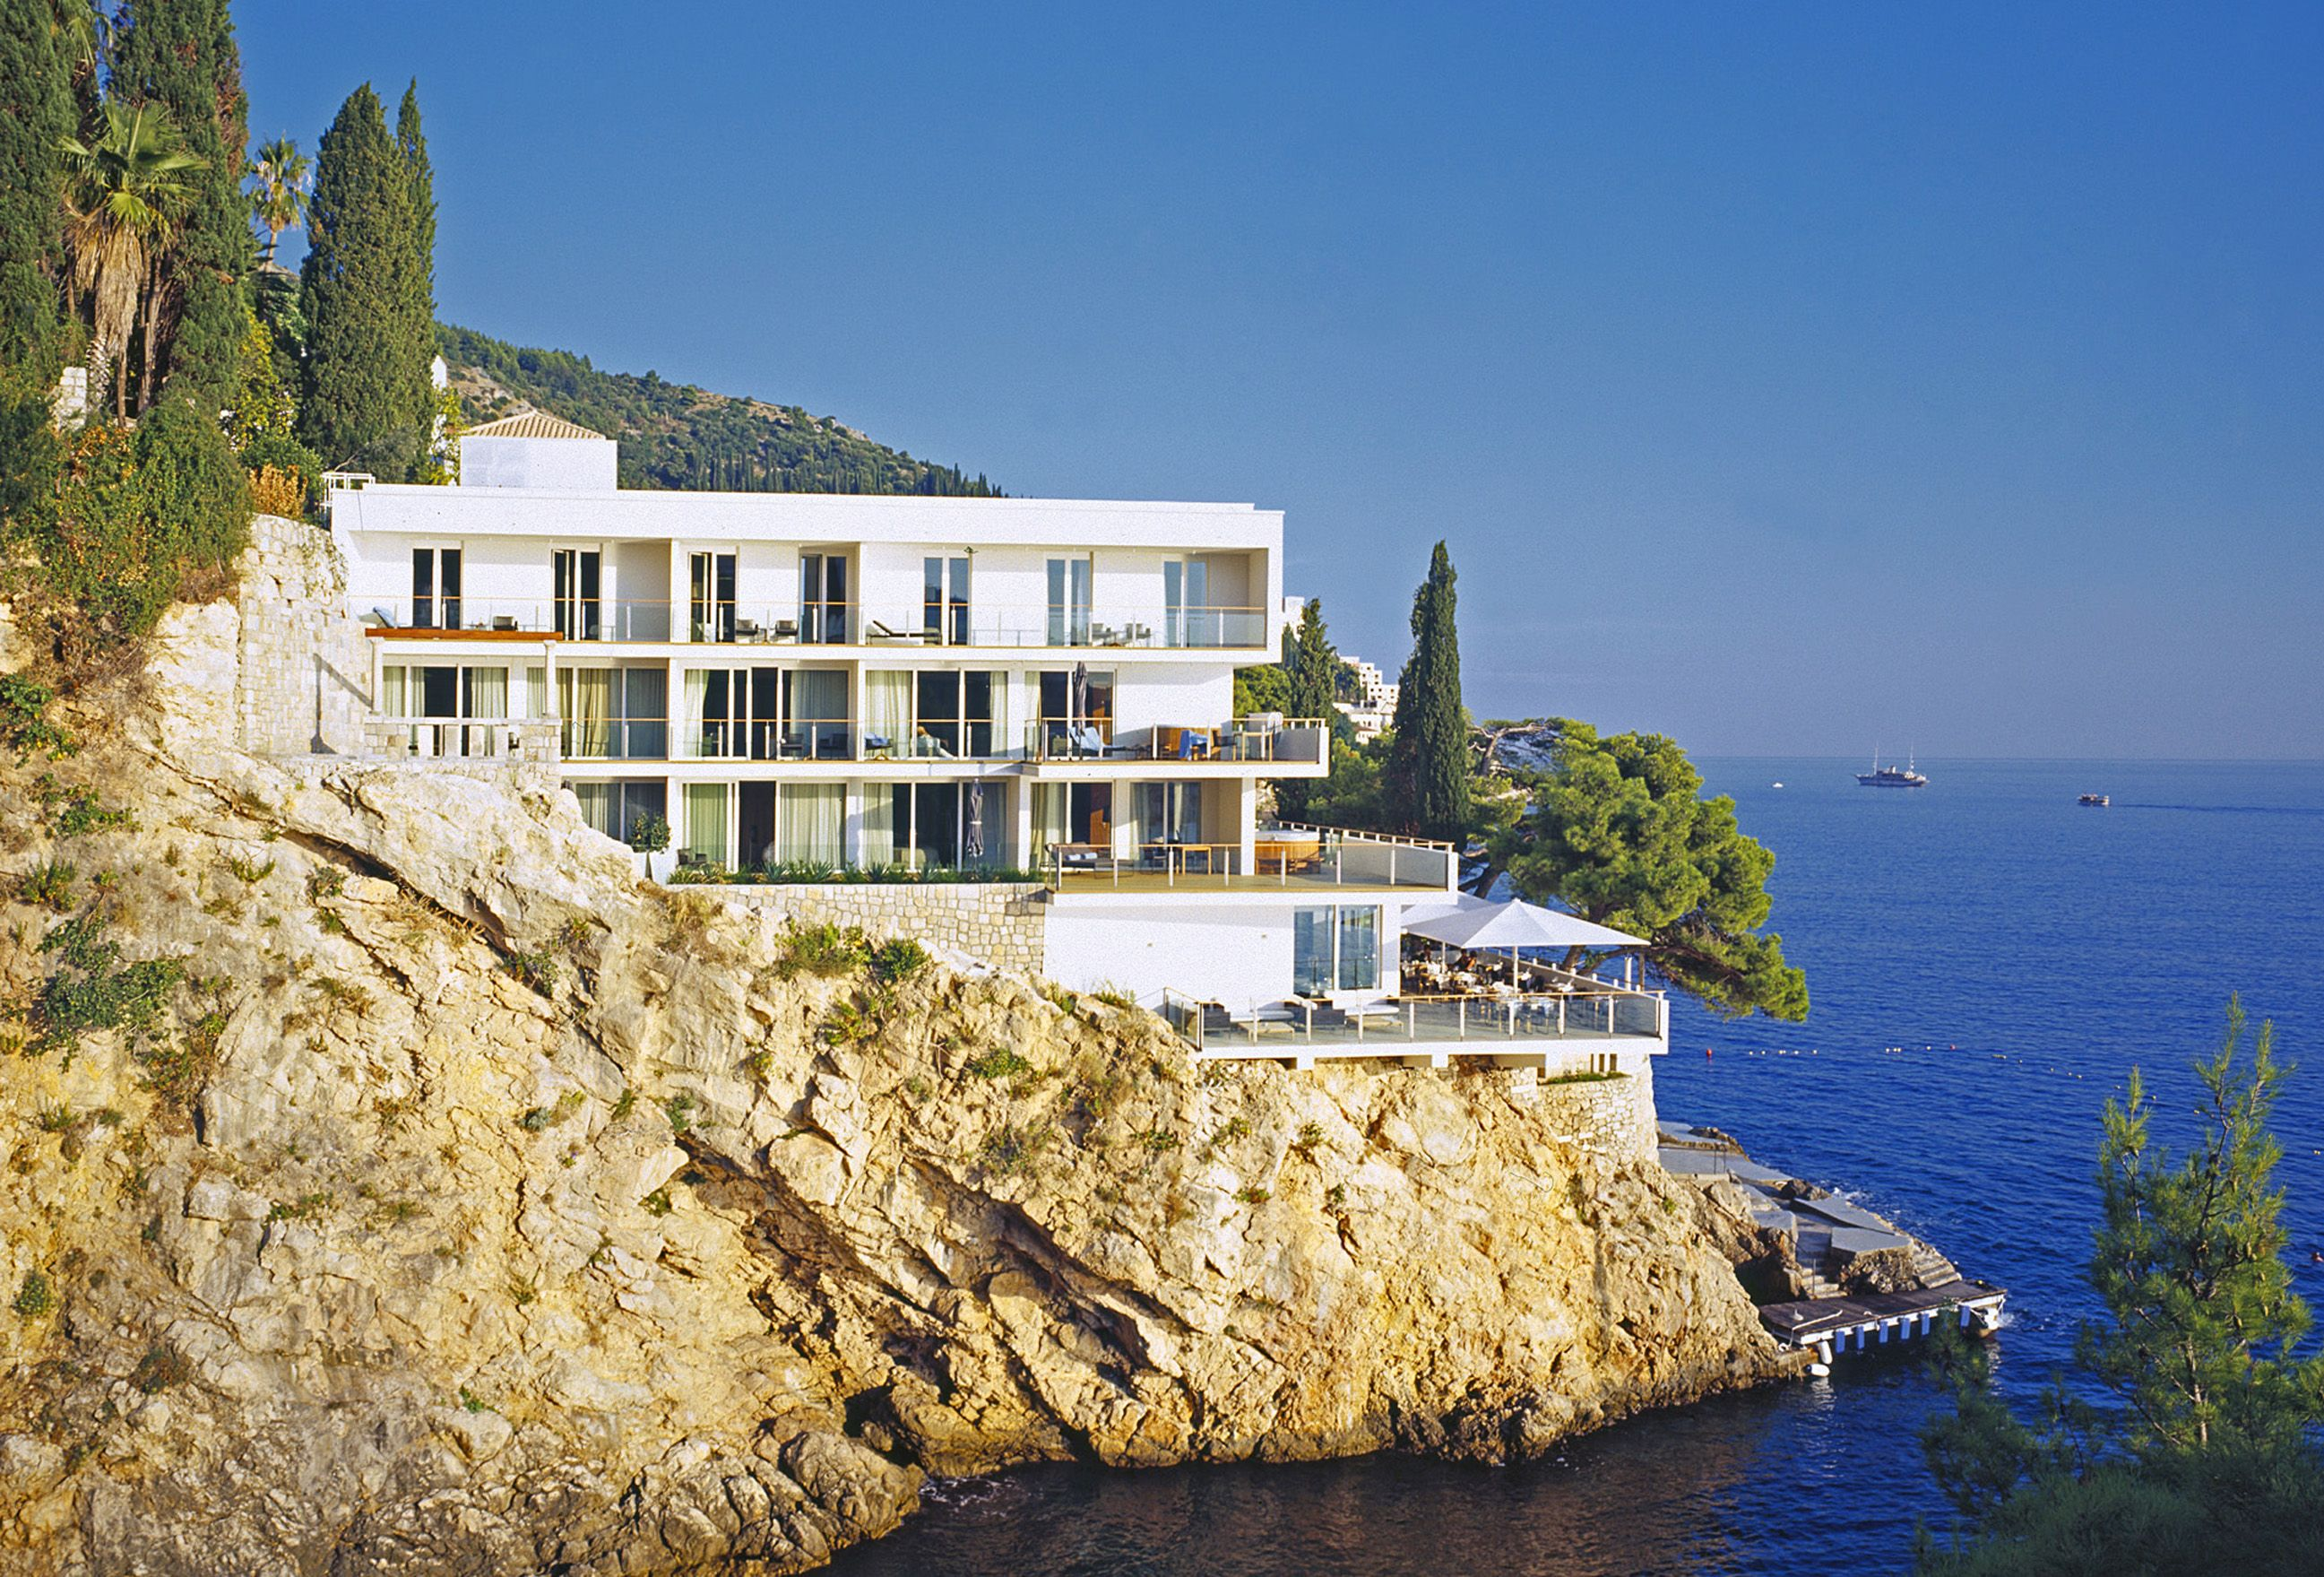 Positioned On The Cliffs Above The Prestigious St Jacob S